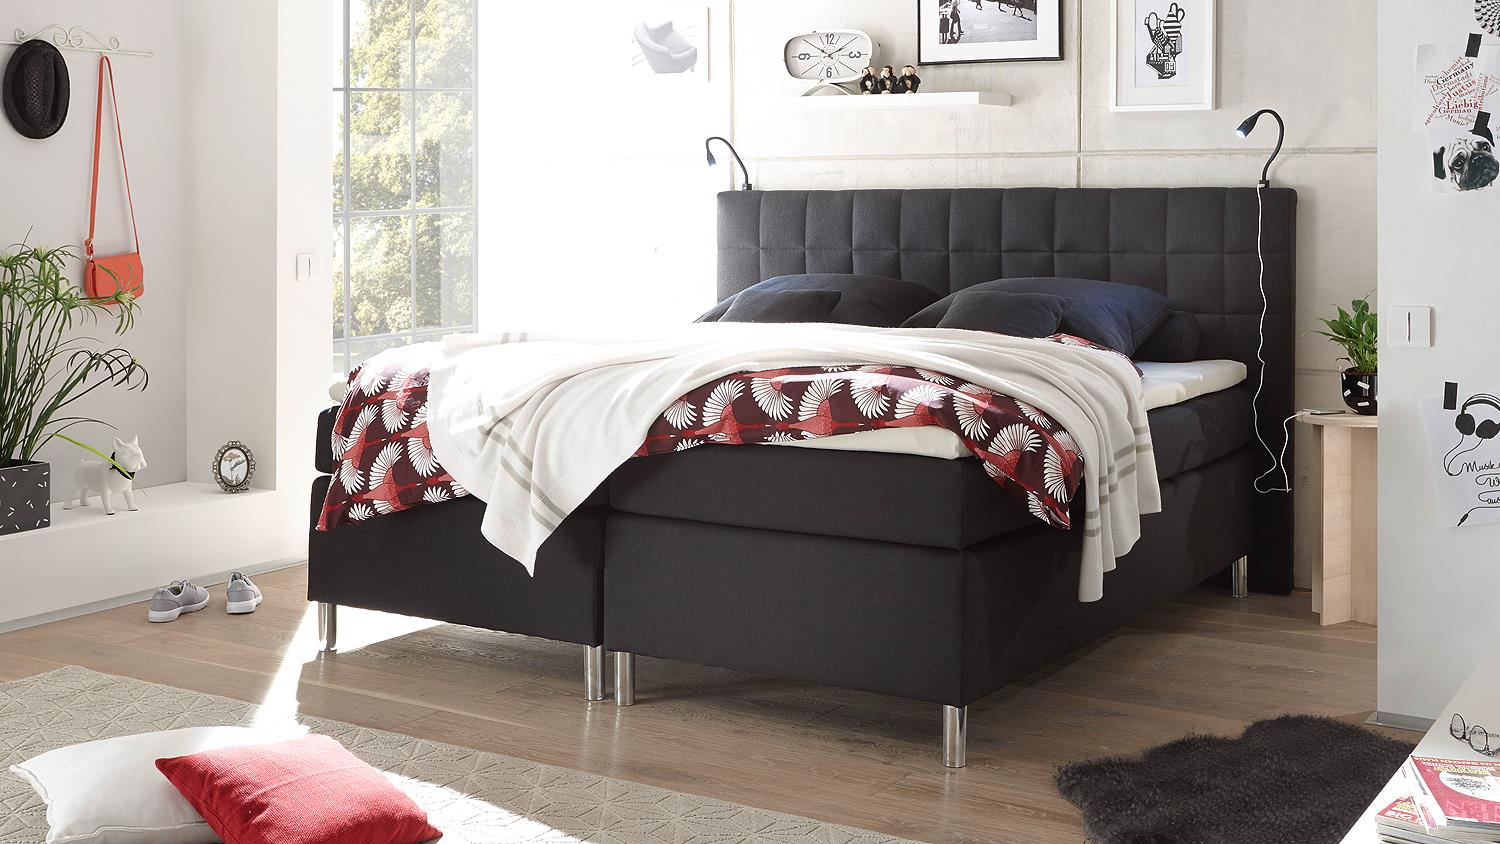 boxspringbett vitoria schlafzimmer bett in schwarz mit topper 180x200. Black Bedroom Furniture Sets. Home Design Ideas